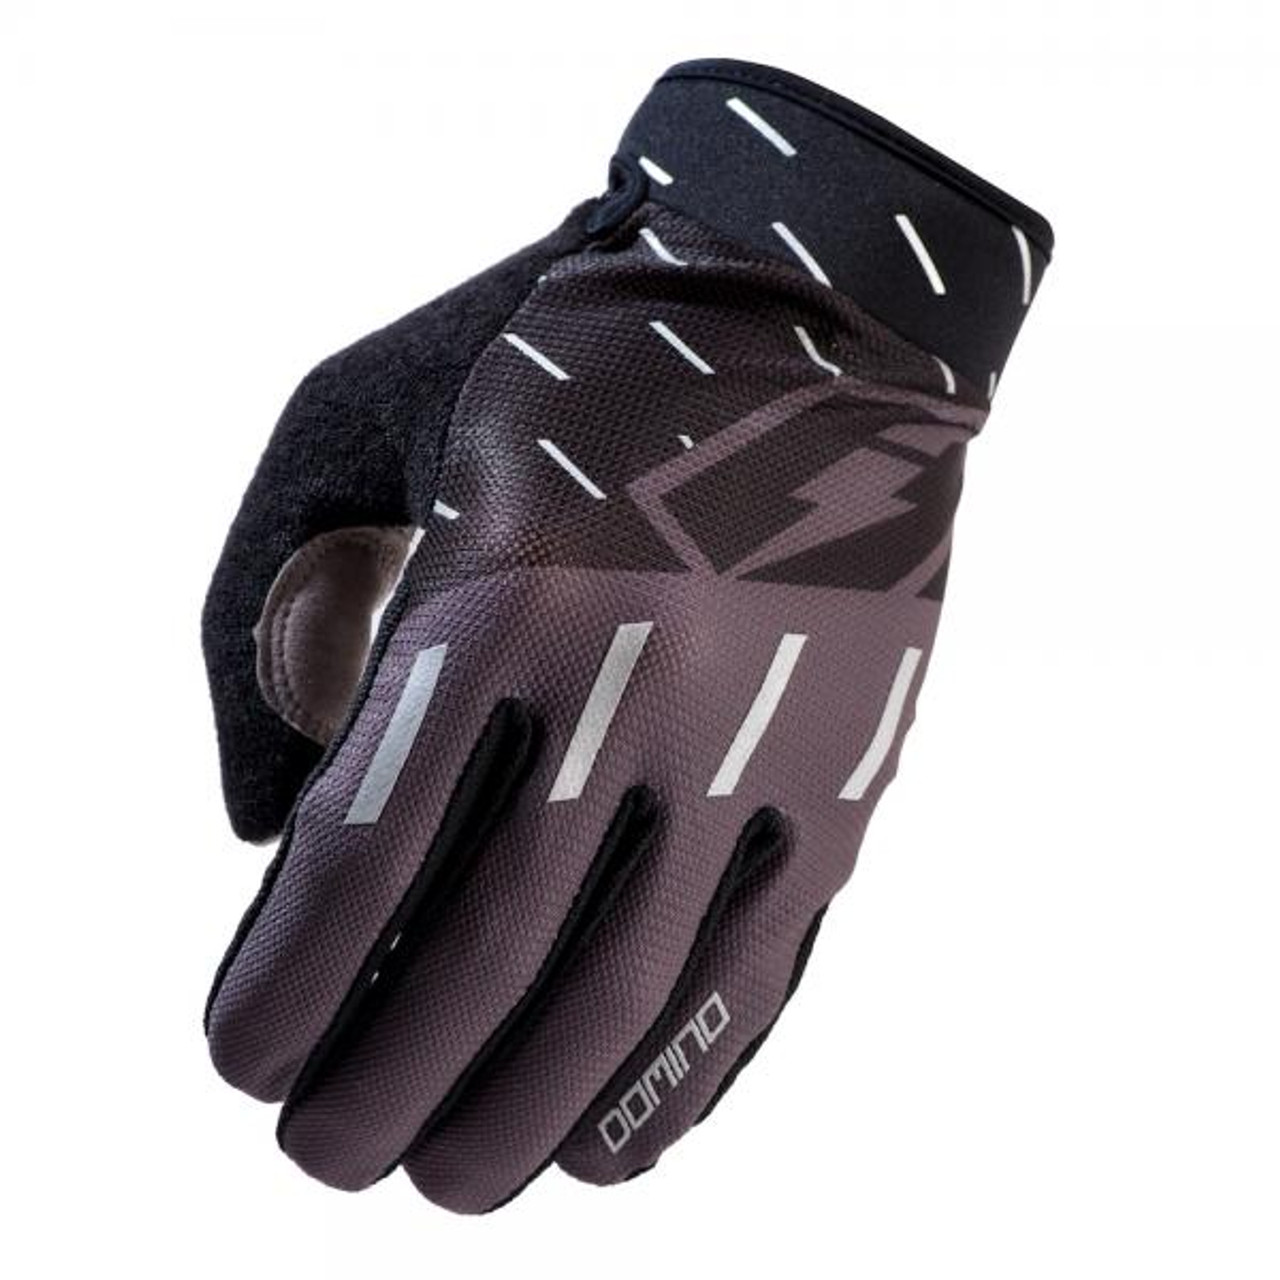 Gloves Domino, black/ grey/ silver